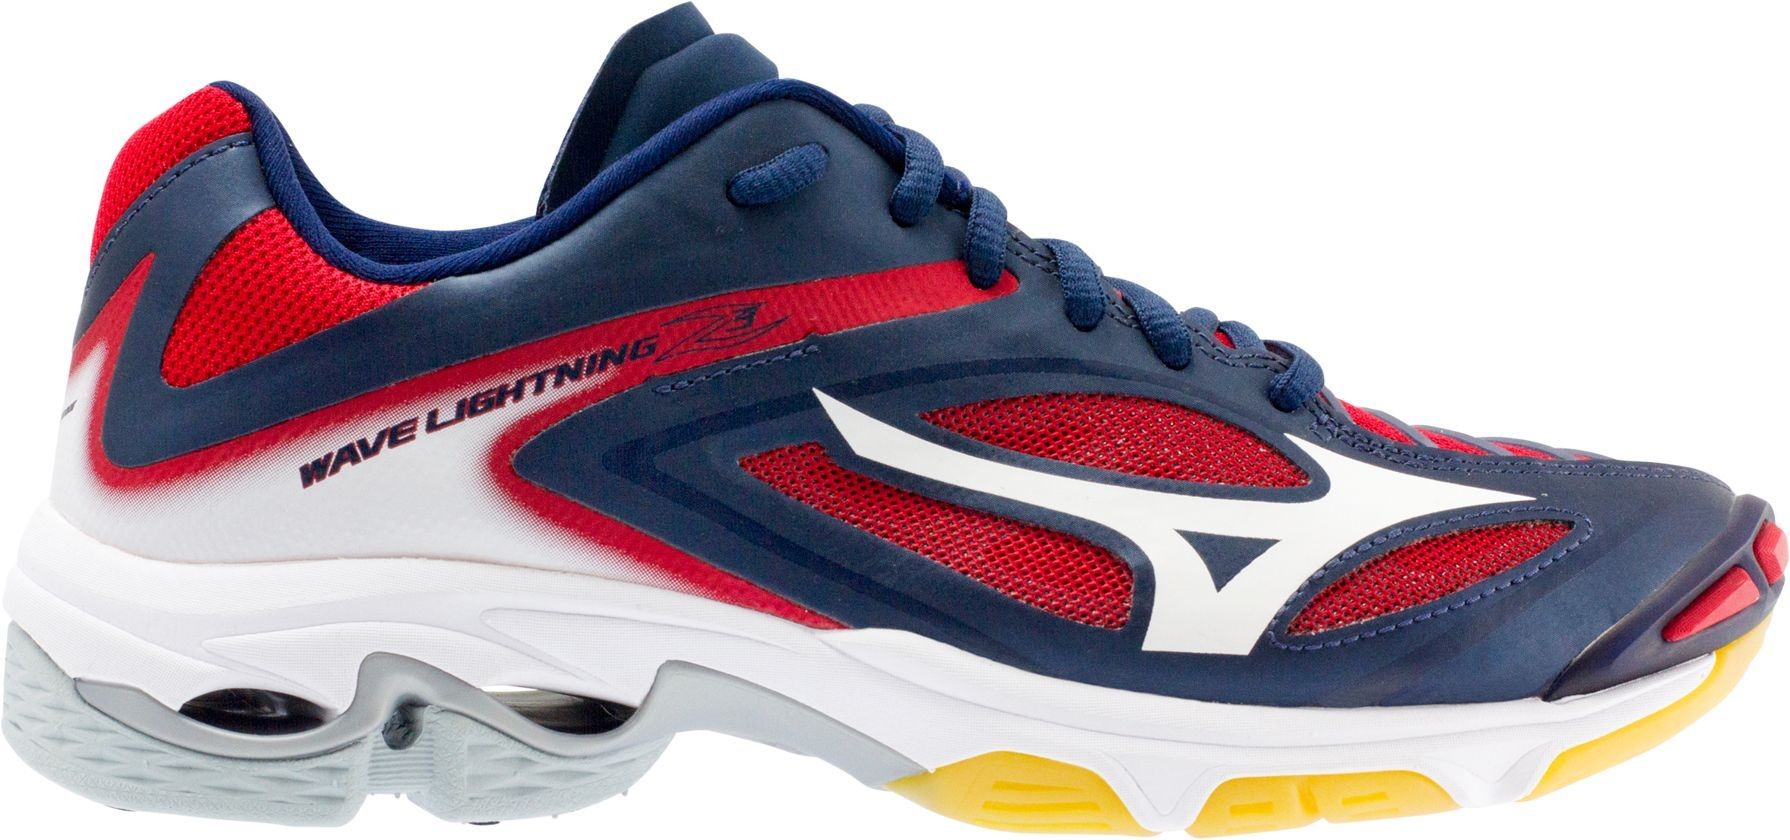 Mizuno Women S Wave Lightning Z3 Volleyball Shoes Size 11 5 Blue Red Volleyball Shoes Minimalist Shoes Best Basketball Shoes